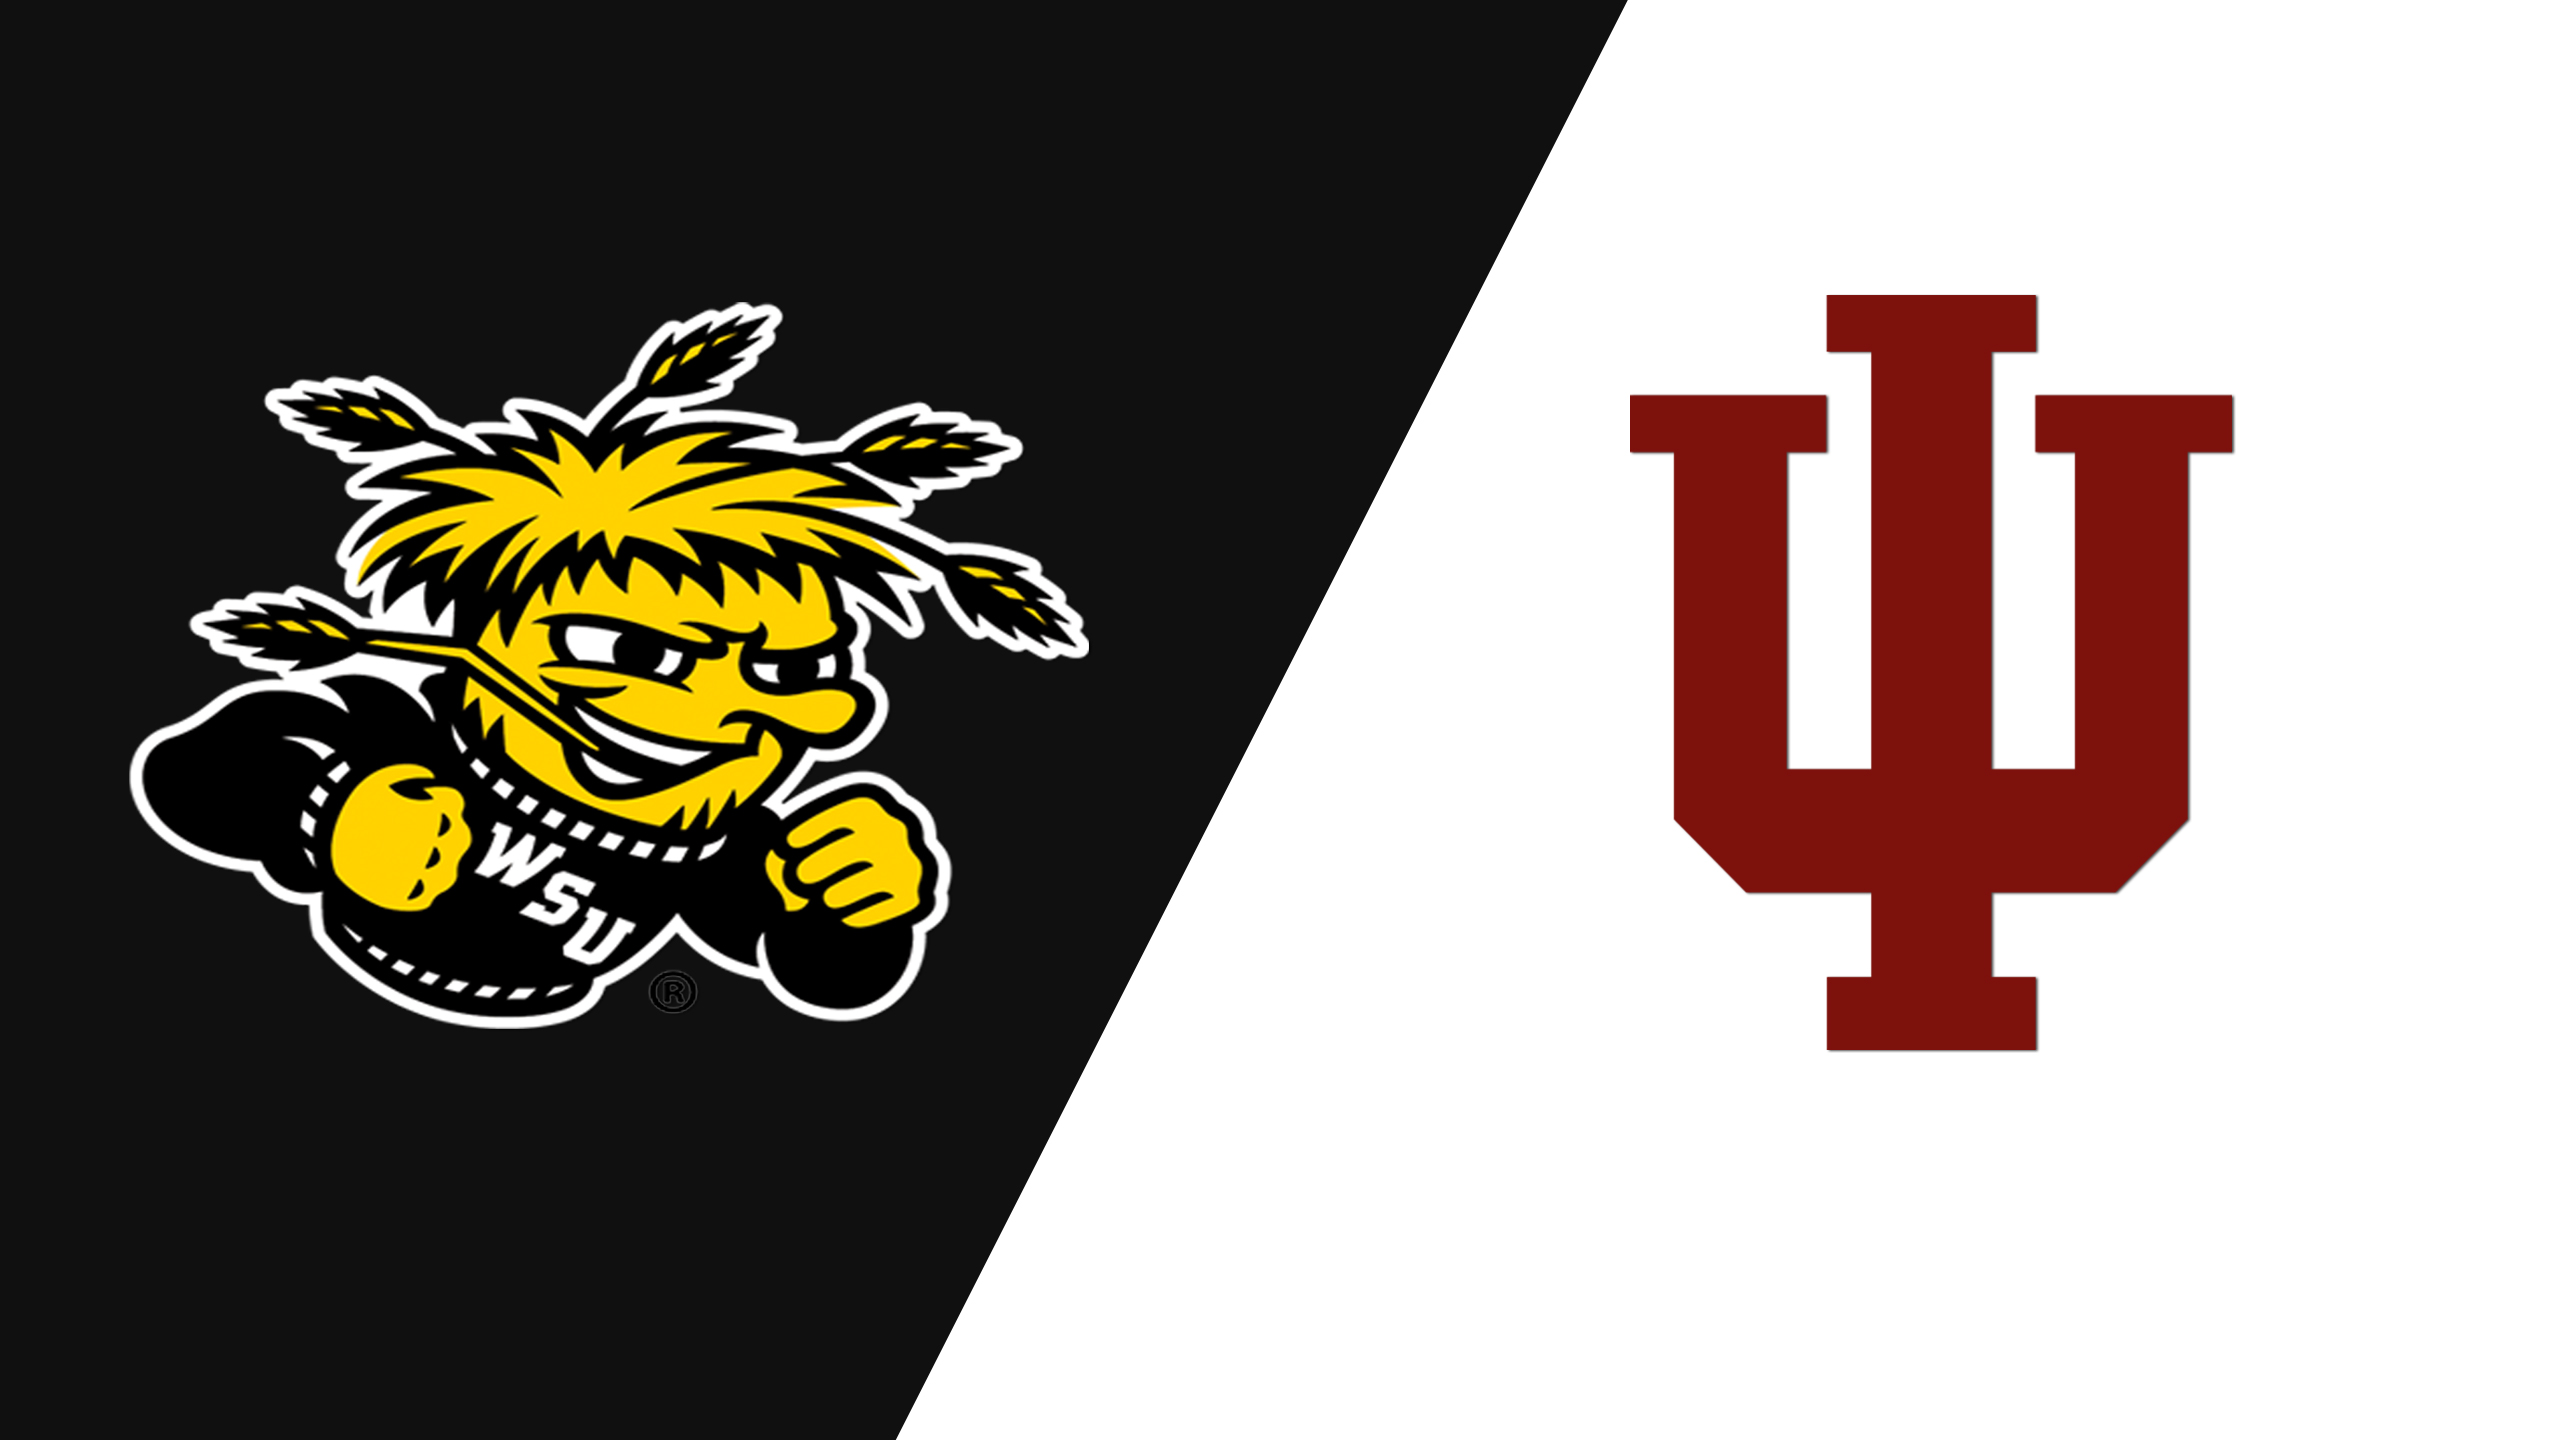 #6 Wichita State vs. #1 Indiana (Quarterfinal #1) (NIT) (re-air)